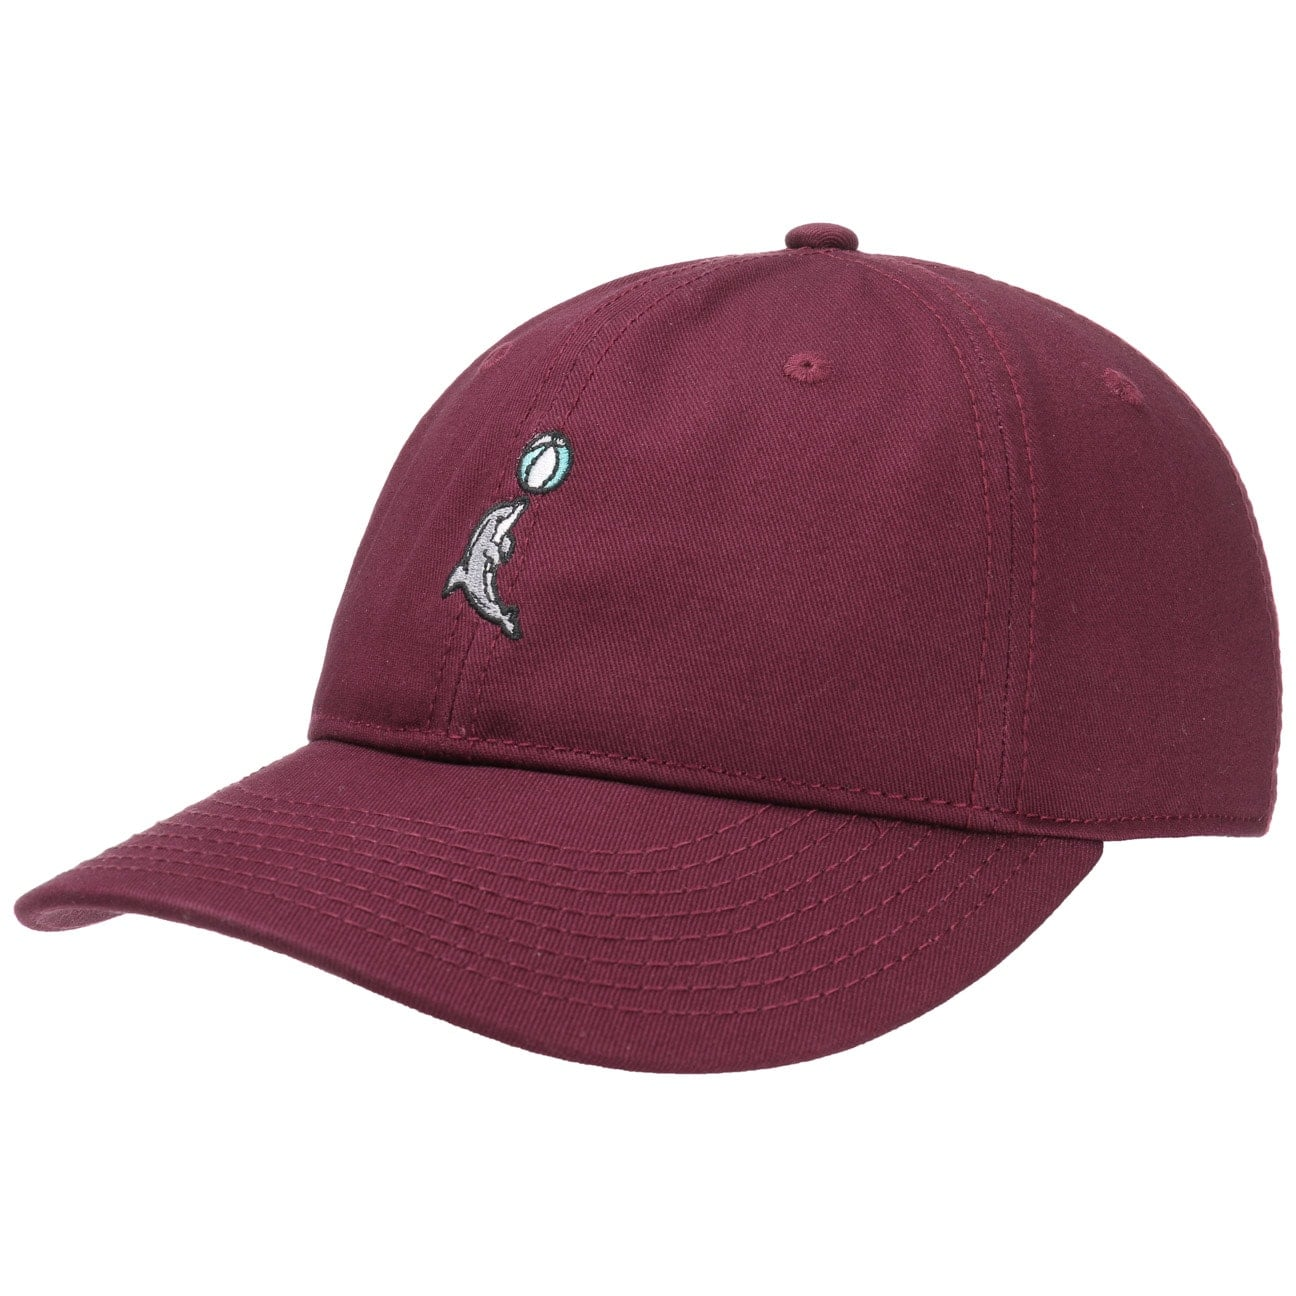 Casquette Dolphin Dad Hat by WEMOTO  baseball cap